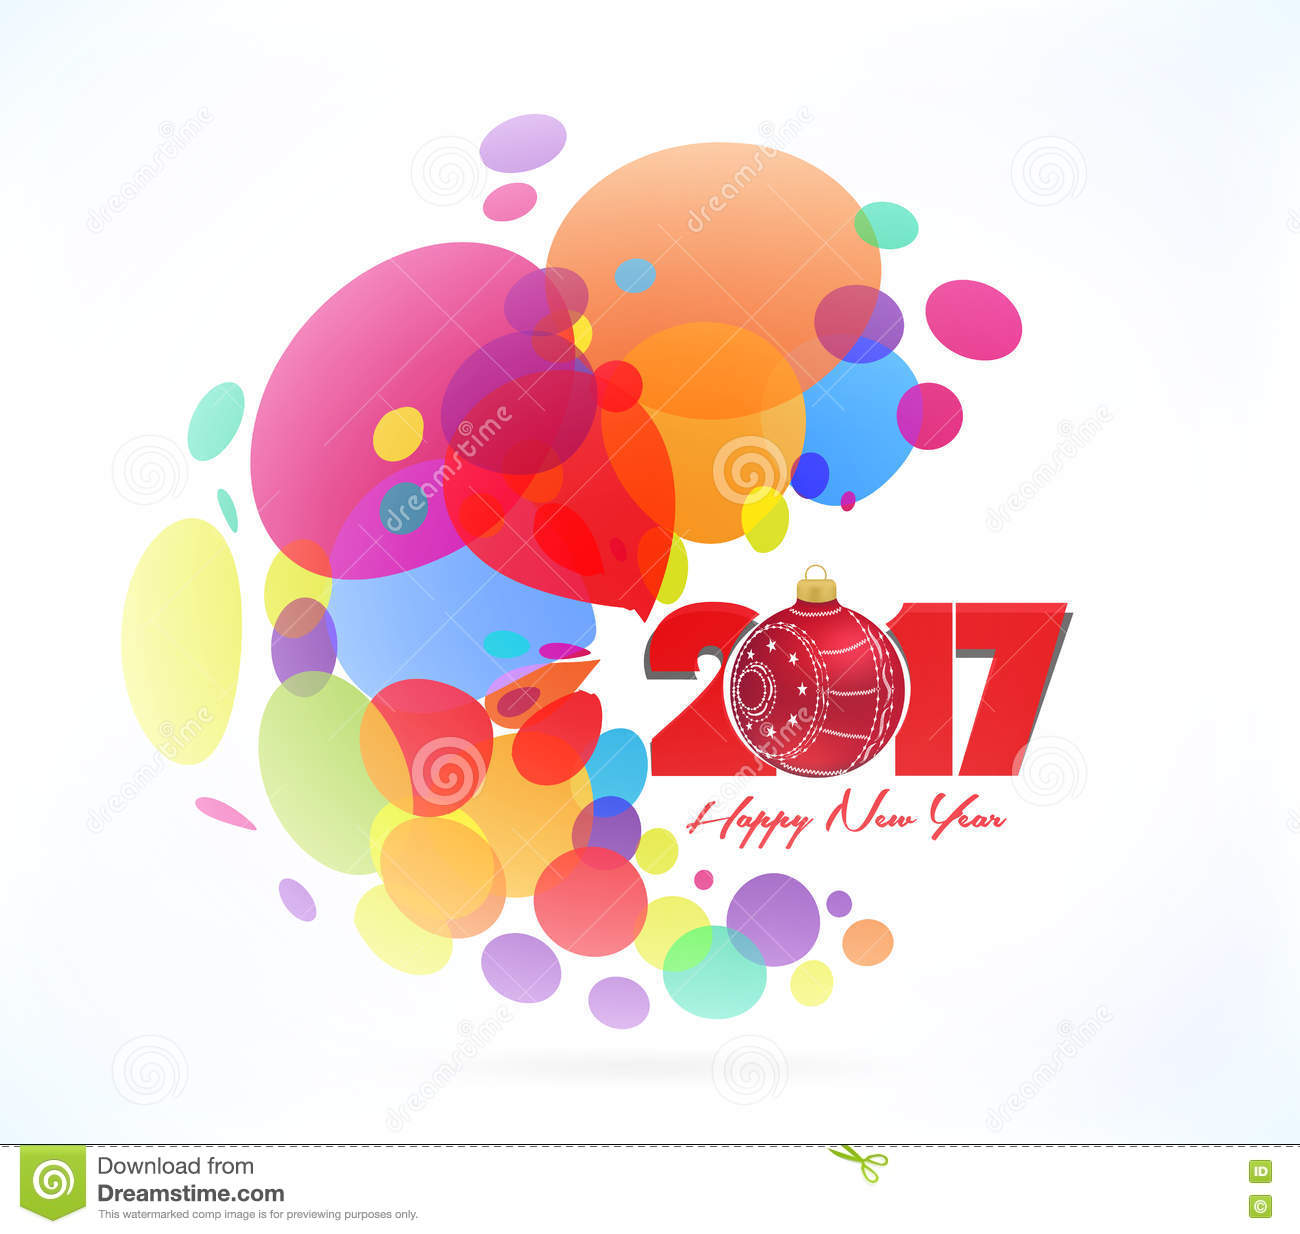 christmas and happy new year 2017 colorful abstract background